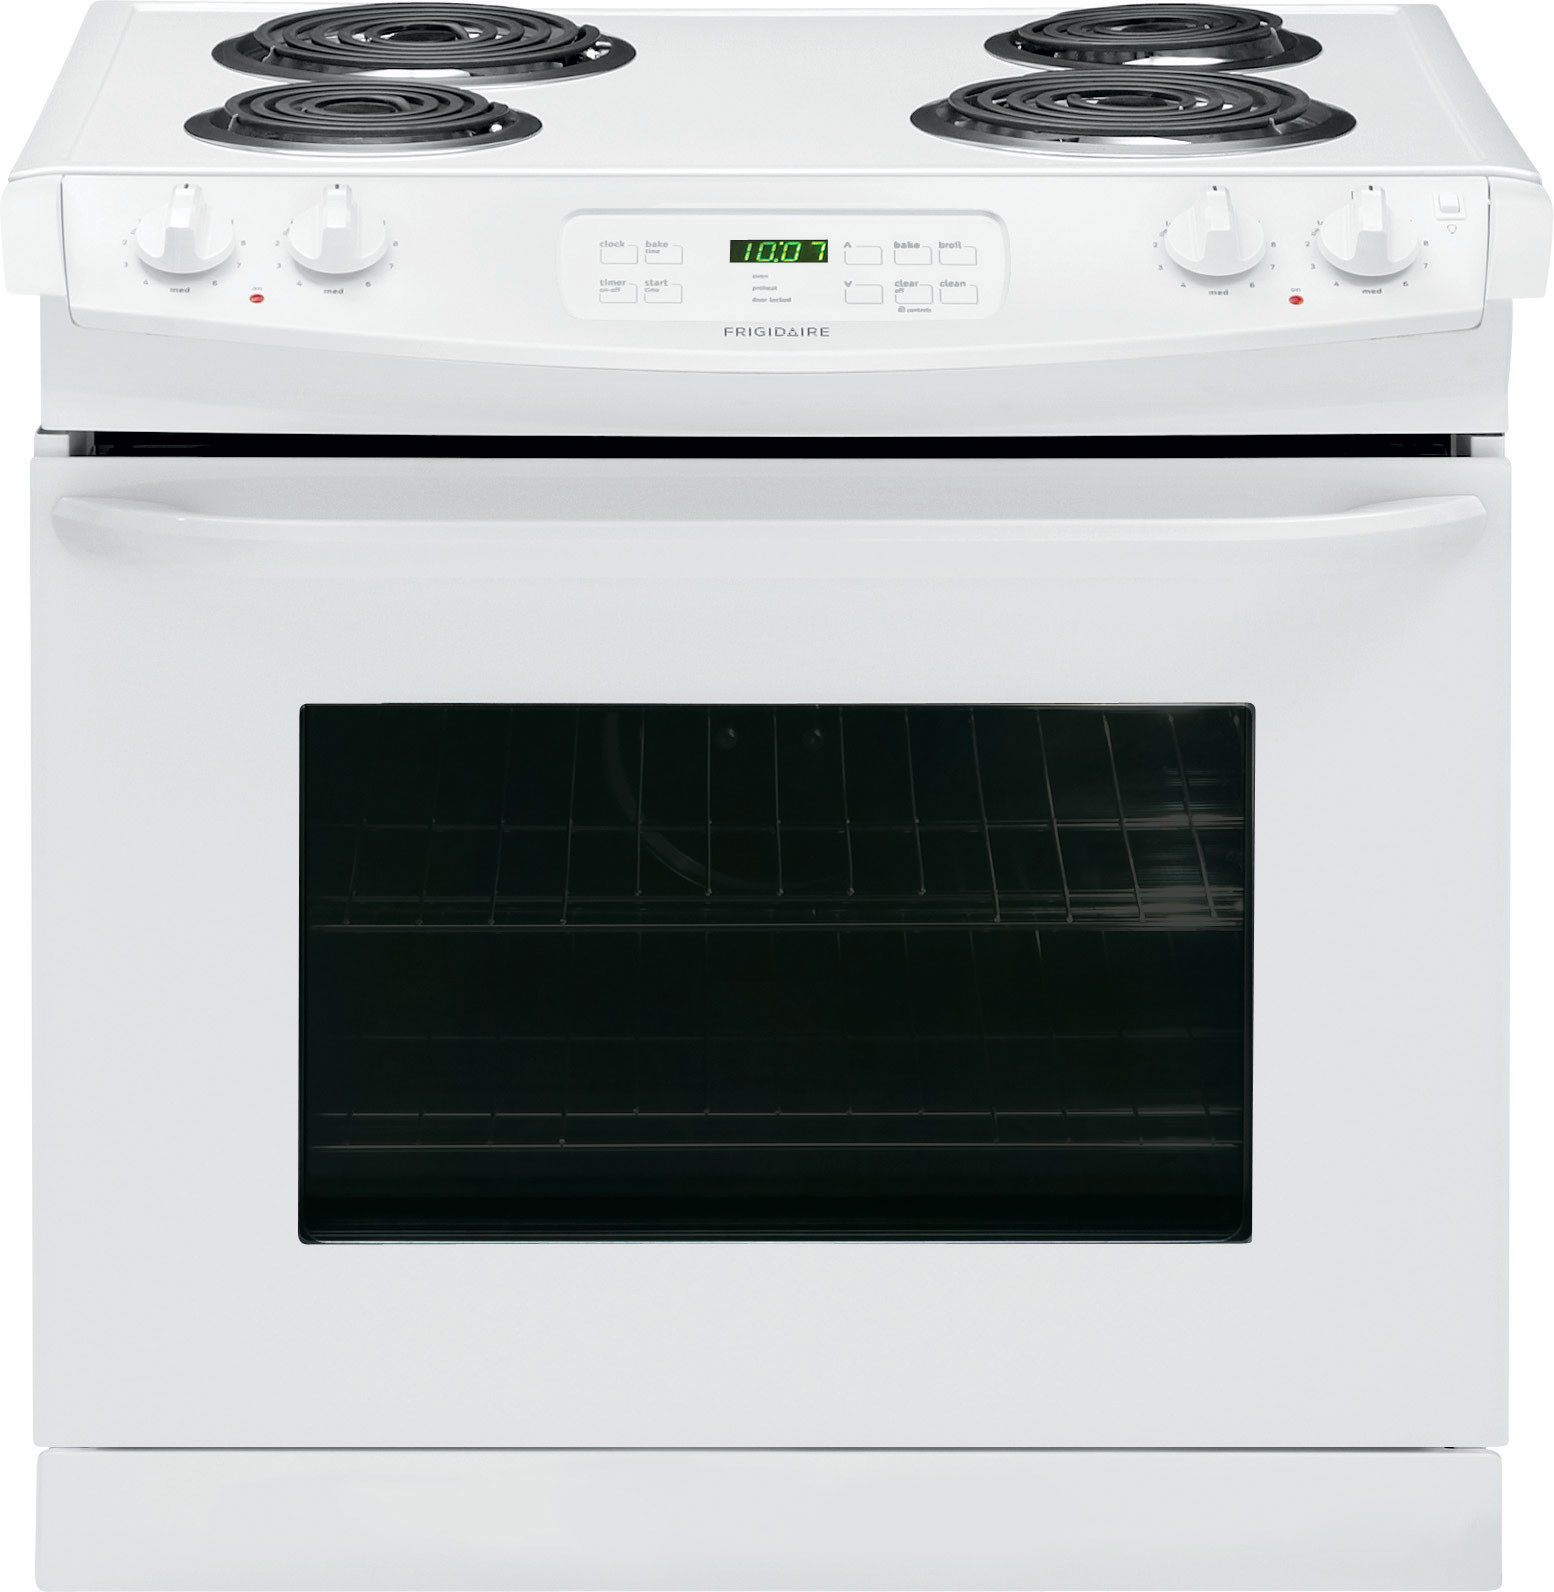 Frigidaire Ffed3015pw 30 Inch Drop In Electric Range With